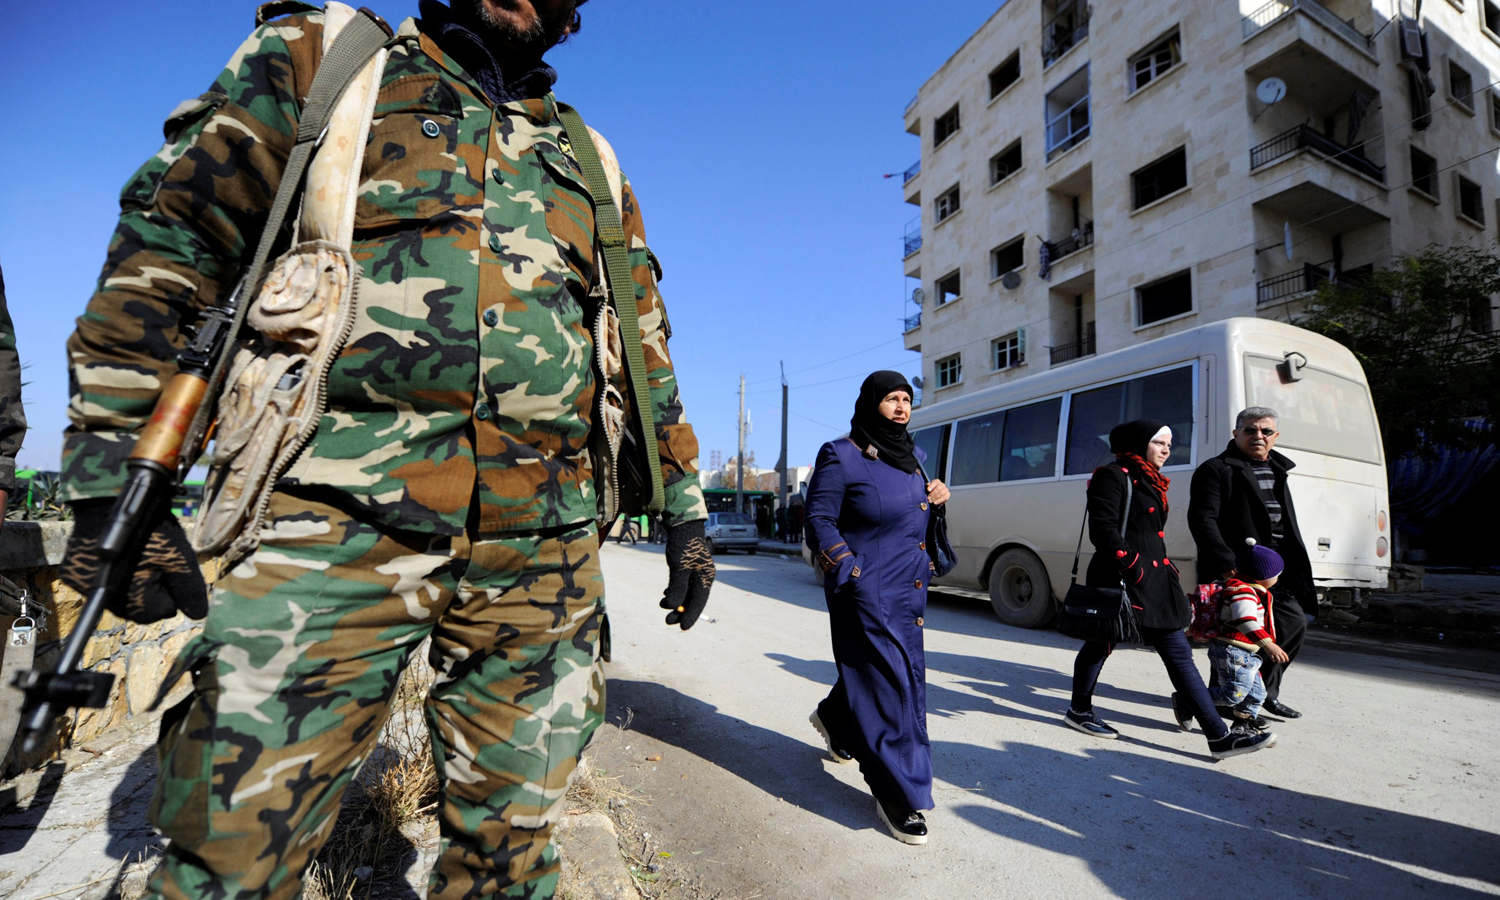 Civilians walking the streets to check on the safety of their houses under the presence of Syrian regime forces in Ibrahim Hanano neighborhood in Aleppo - 4 December 2016 (Omar Sanadiki / Reuters)